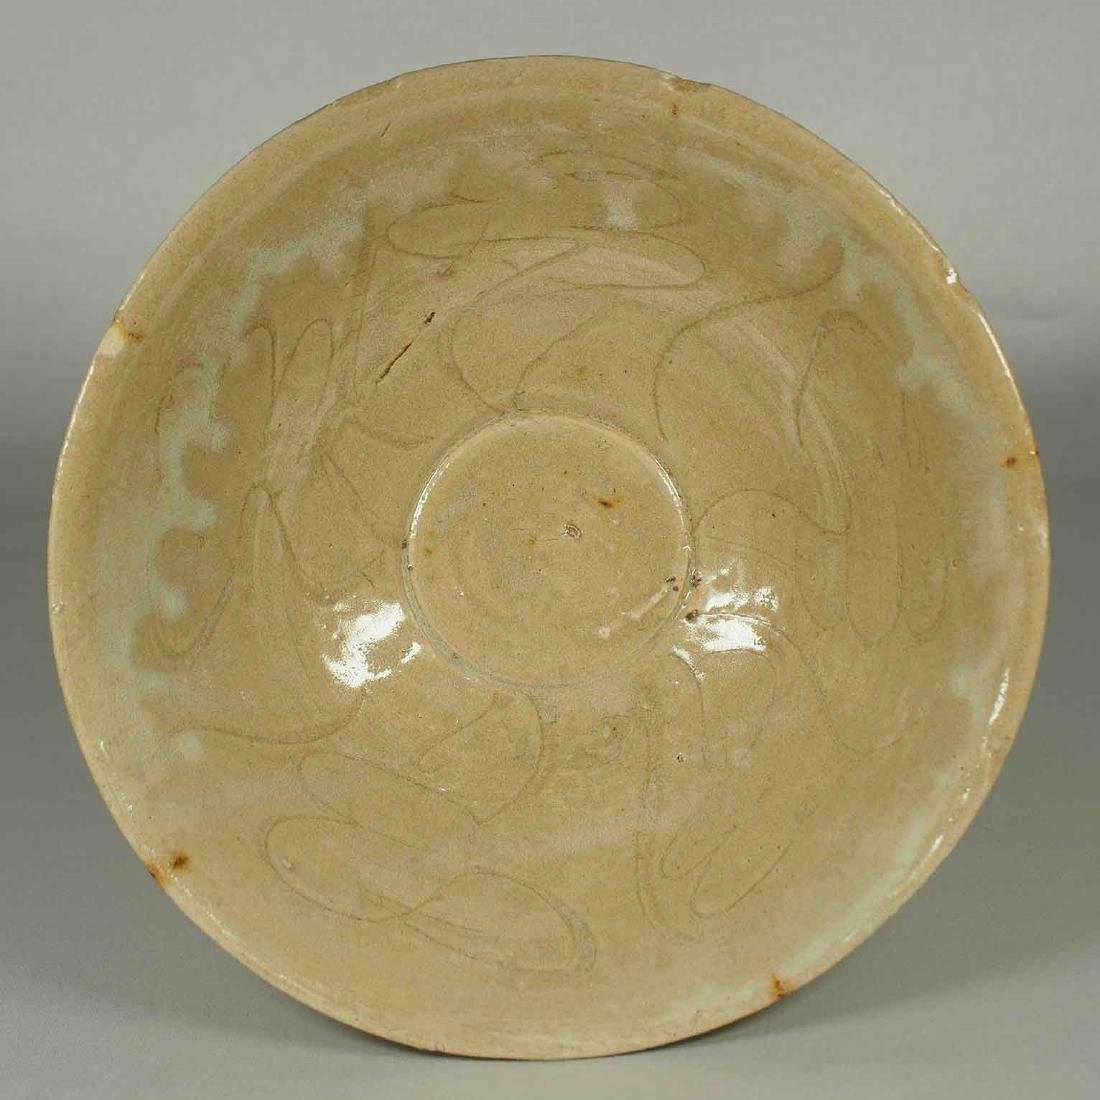 Yue Celadon Bowl with Incised Design, Song Dynasty